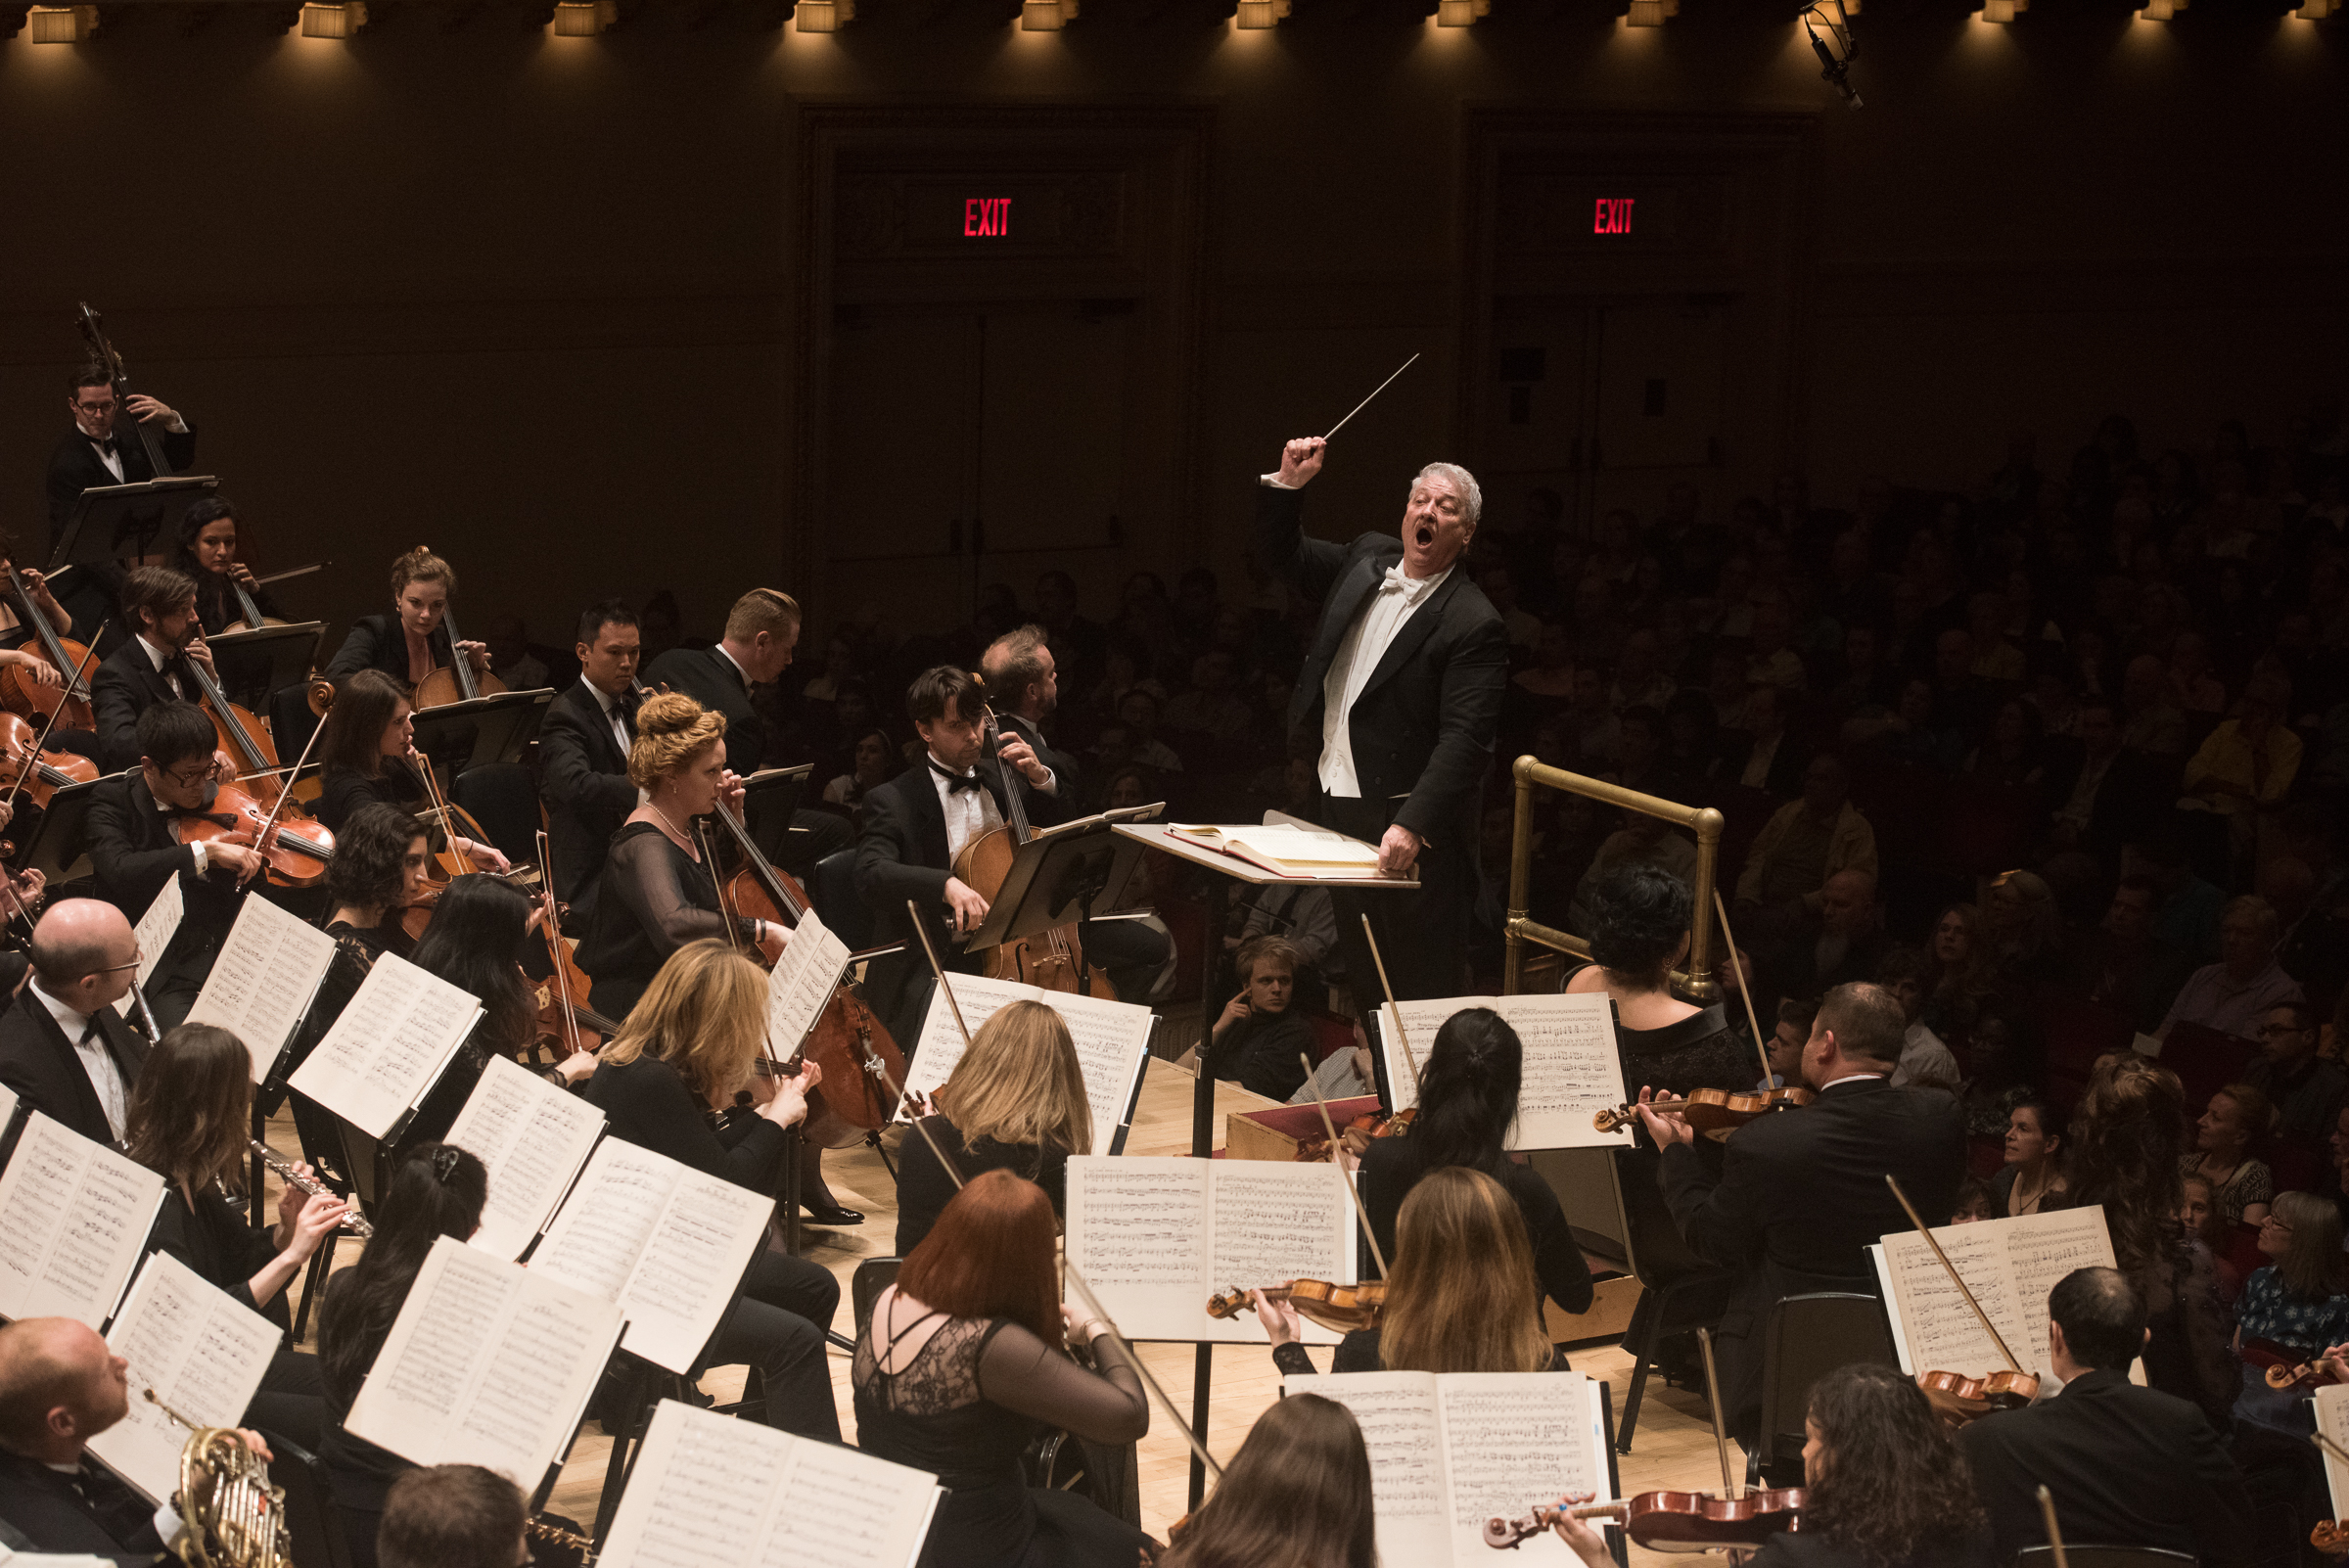 Distinguished Concerts International New York (DCINY) presents Verdi Requiem in Review